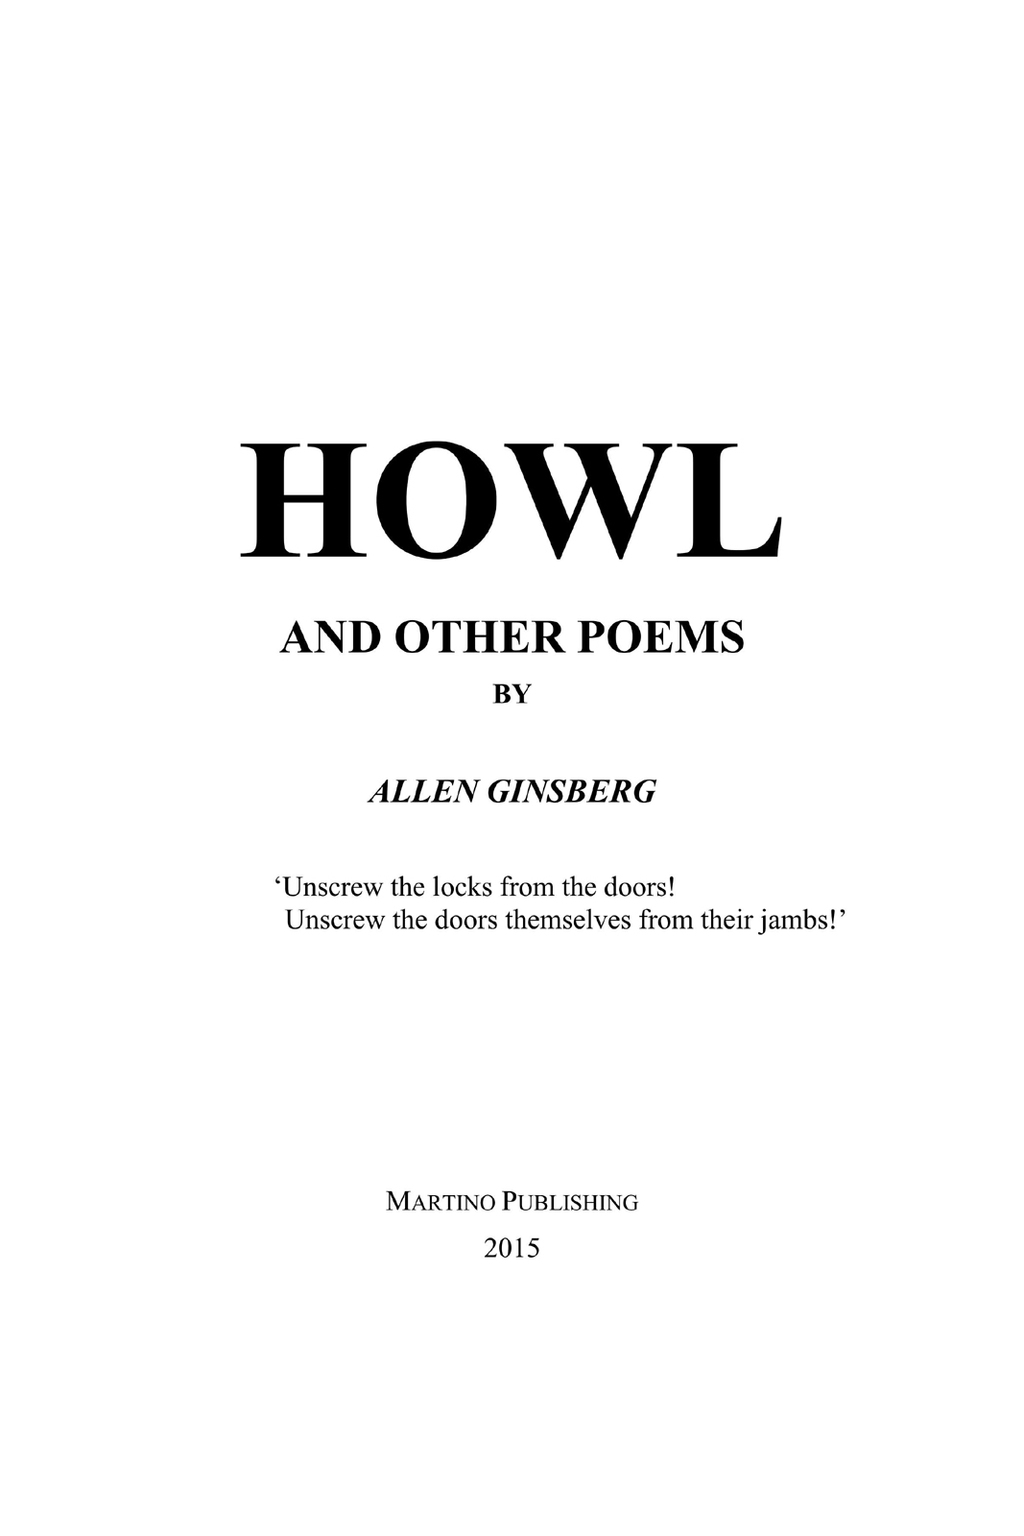 By Allen  Ginsberg PRINTISBN: 9781614278665 E-TEXT ISBN: 9781614278665 Edition: 0